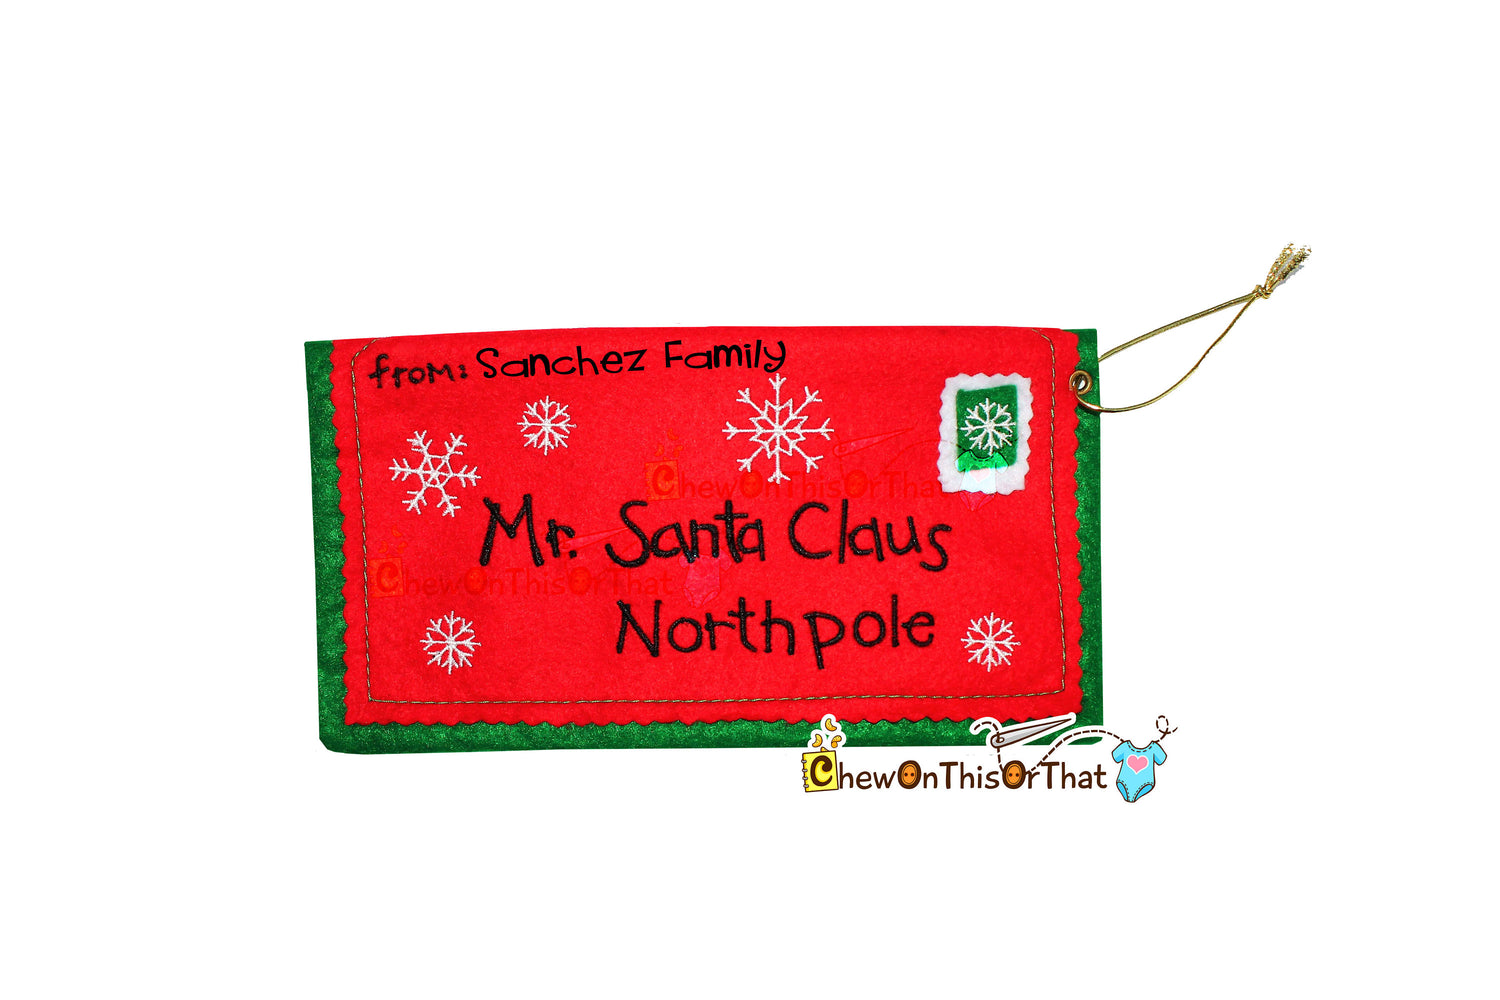 Personalized Standard Size Embroidered Red Letter To Santa Envelope, Dear Mr Santa Claus North Pole Mail, Night Before Christmas - Chew On This Or That